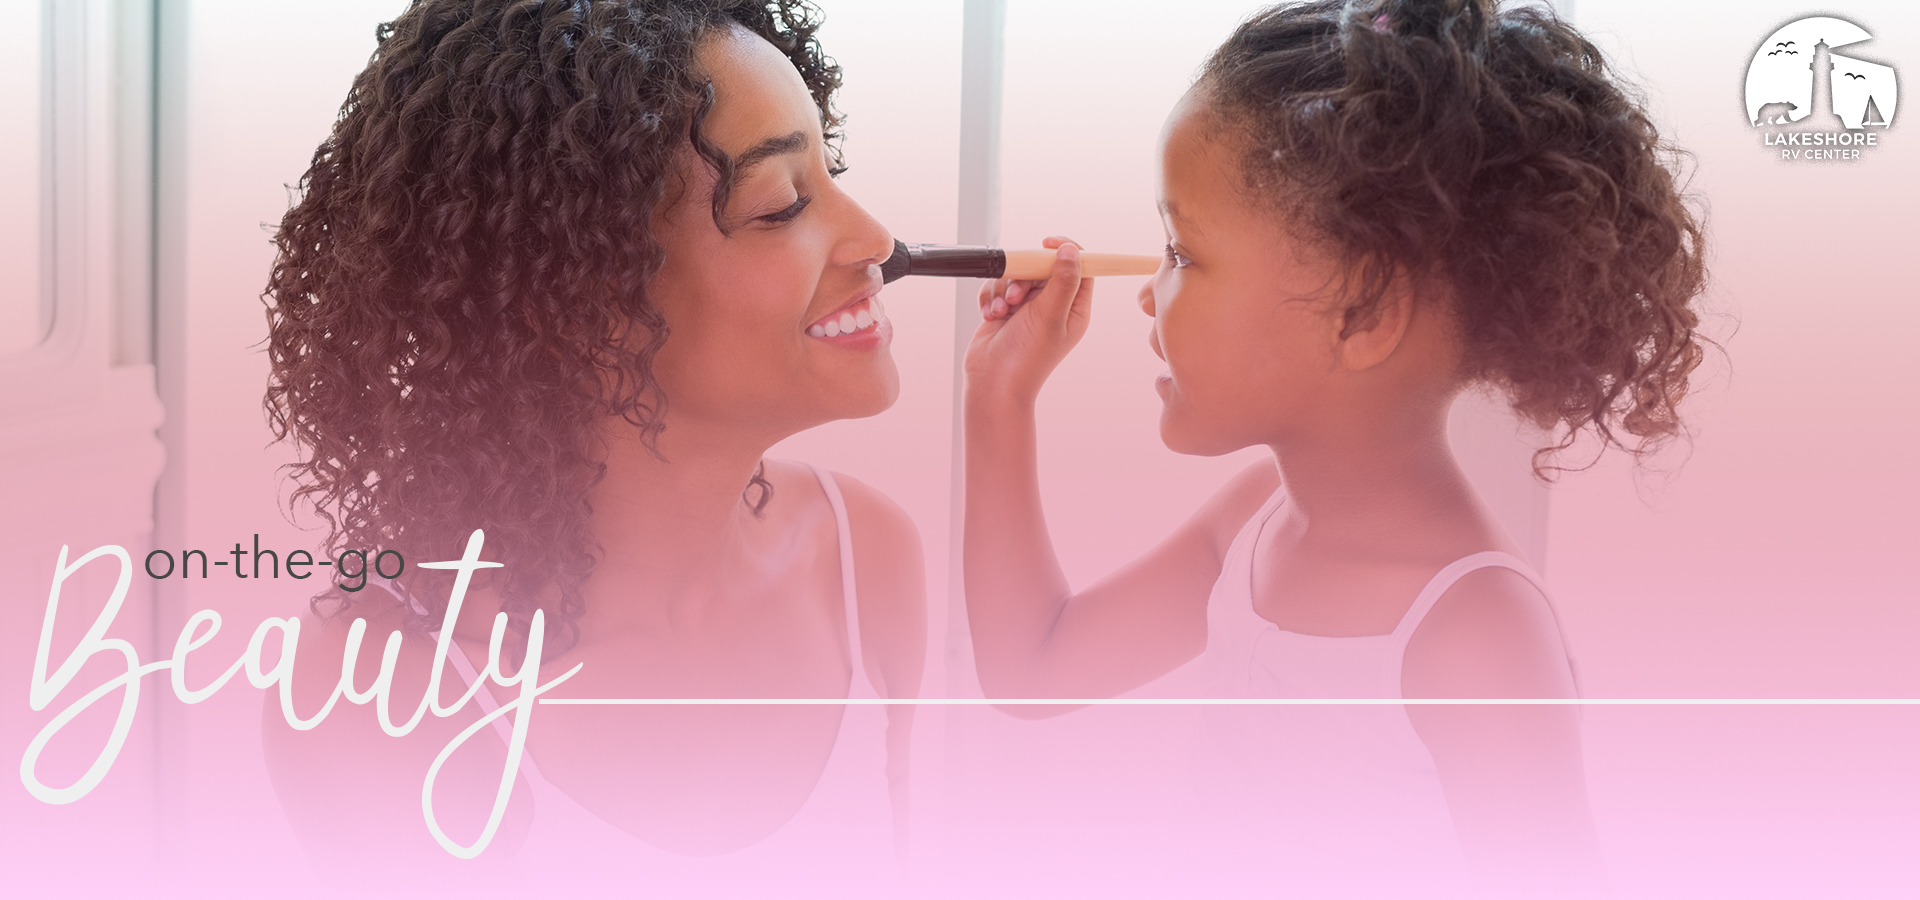 Daughter putting makeup on her mother